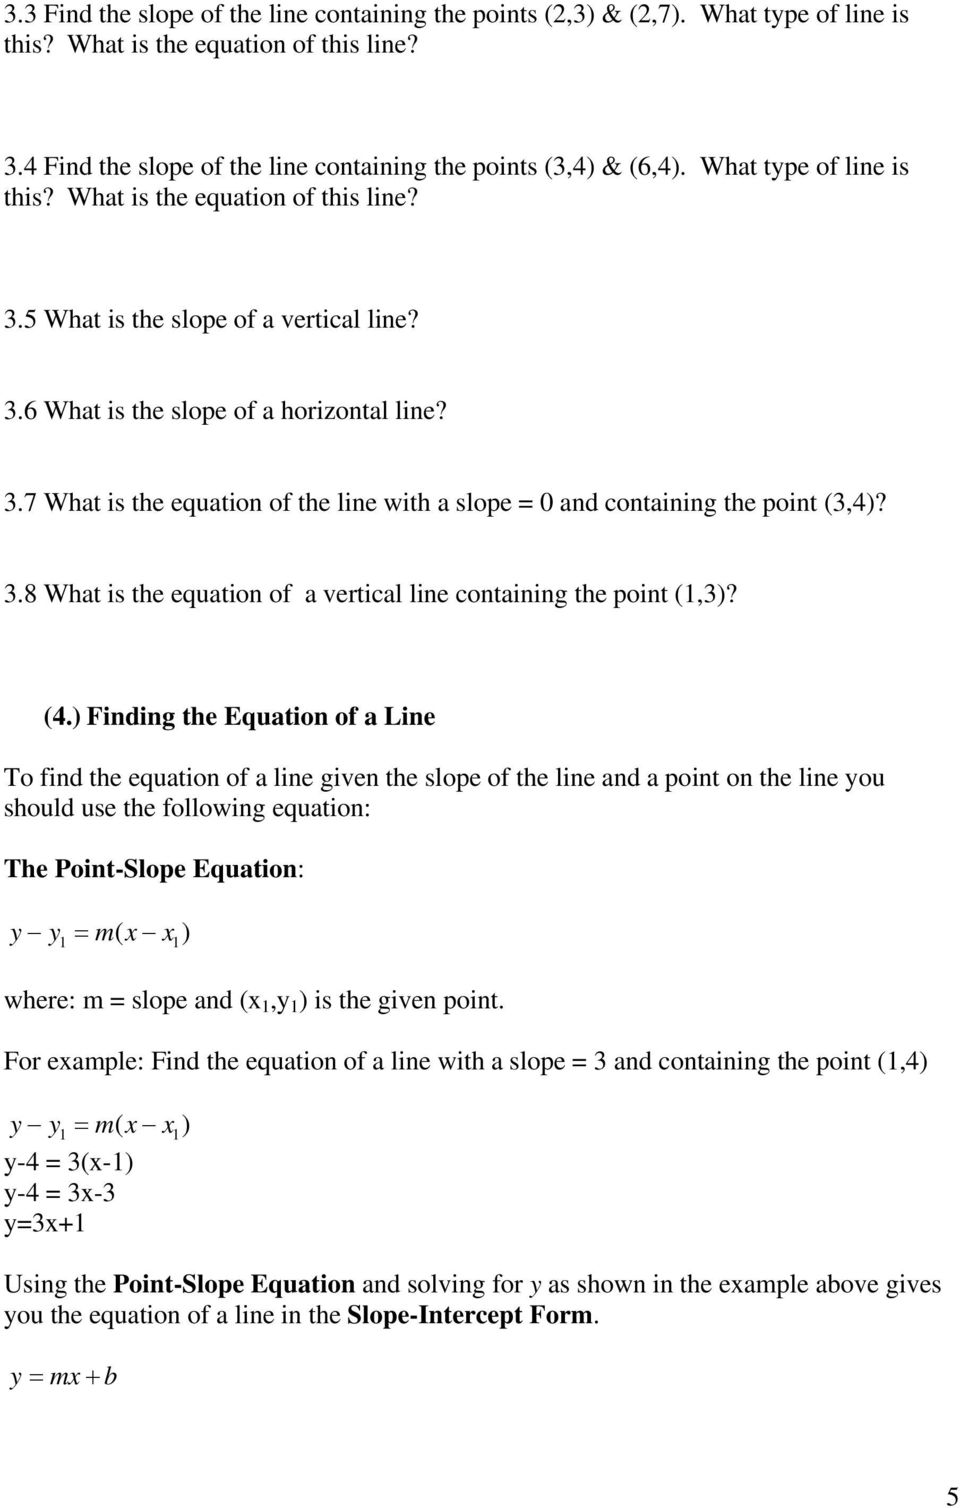 3.8 What is the equation of a vertical line containing the point (1,3)? (4.